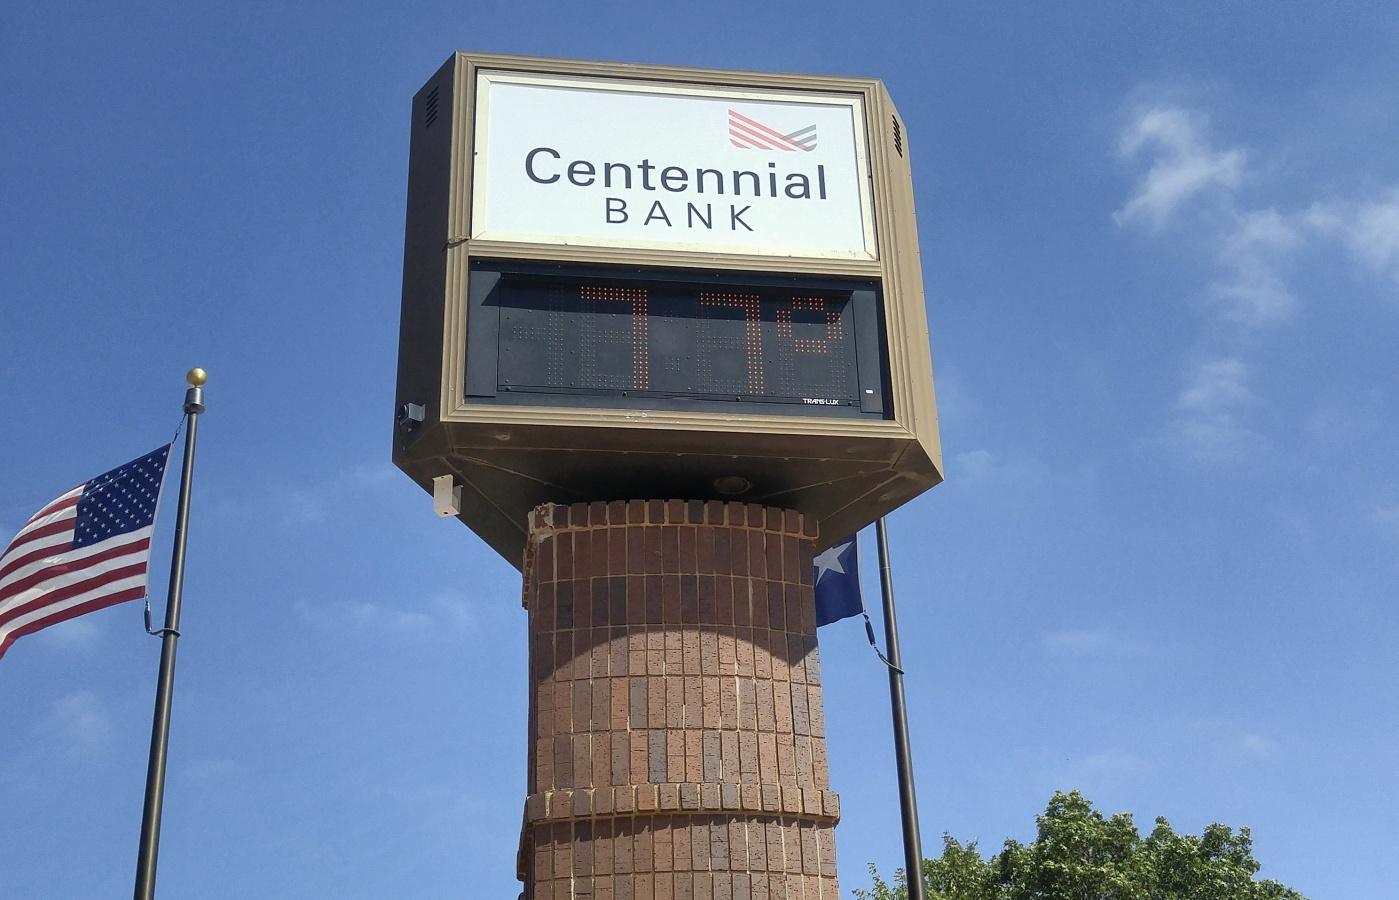 Centennial Bank - Completion Photo 2